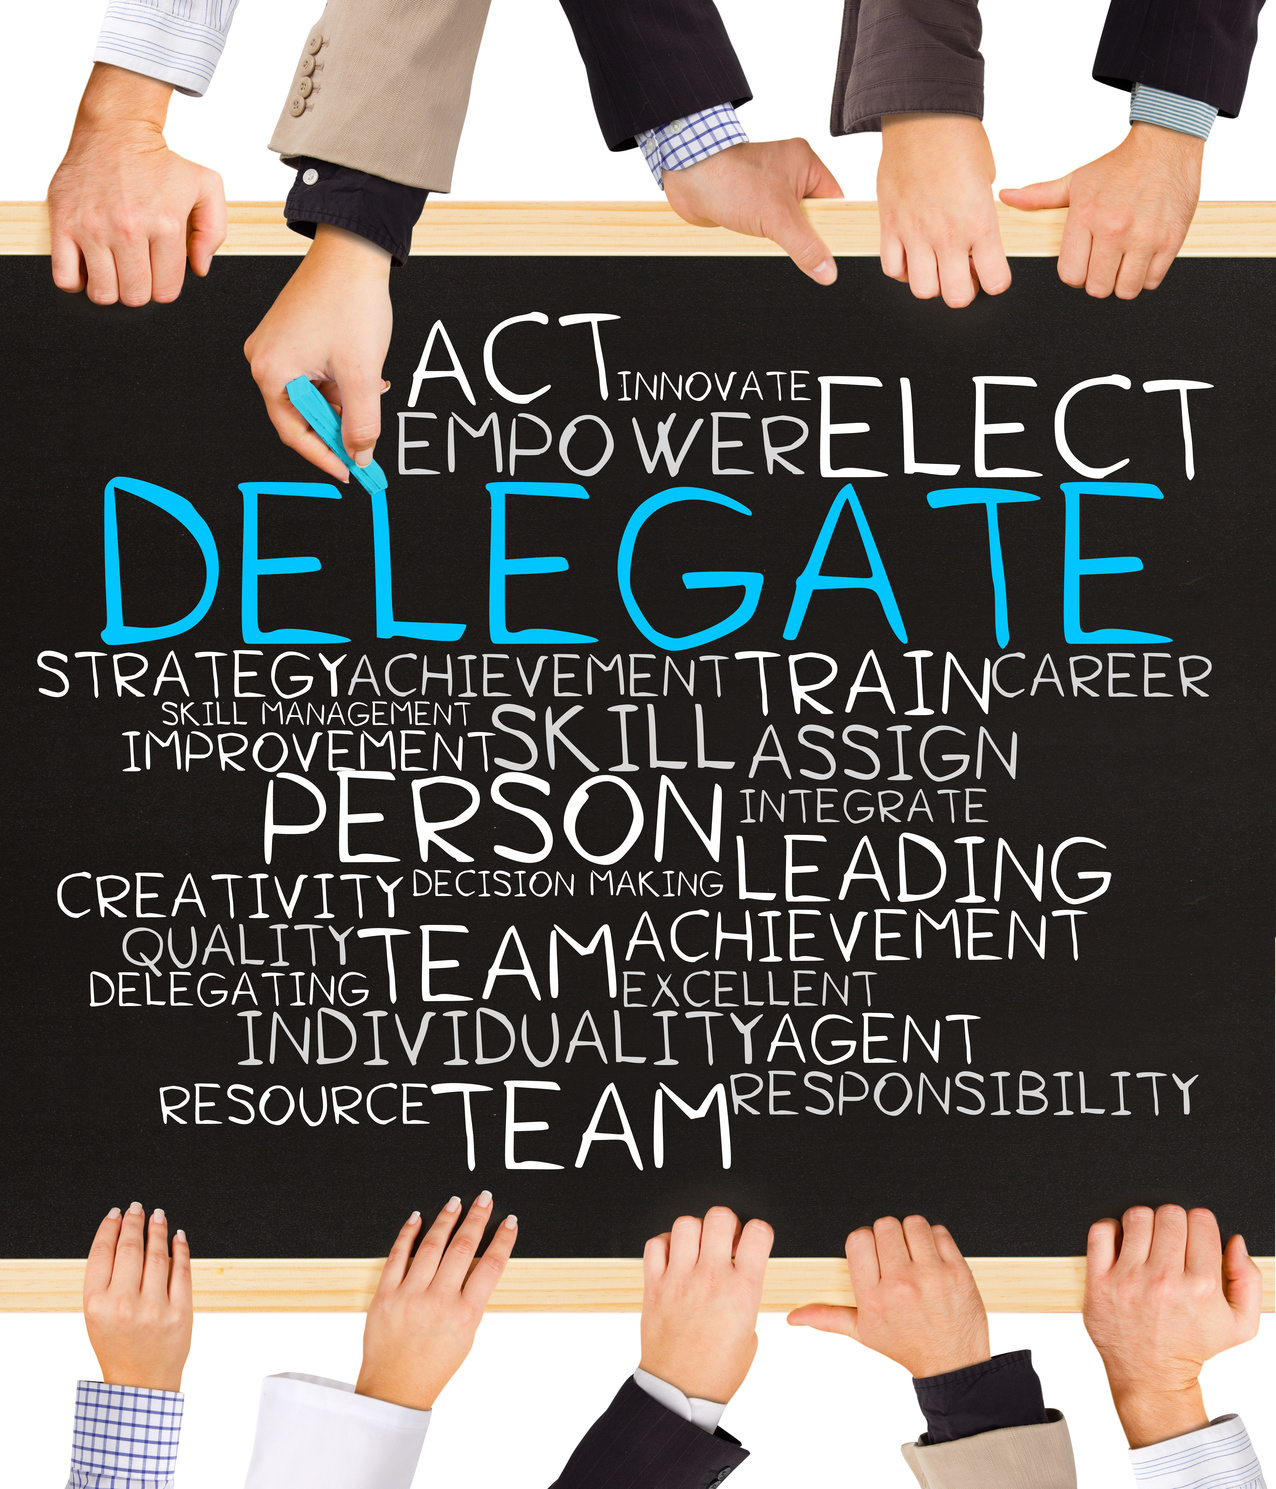 To save time delegate